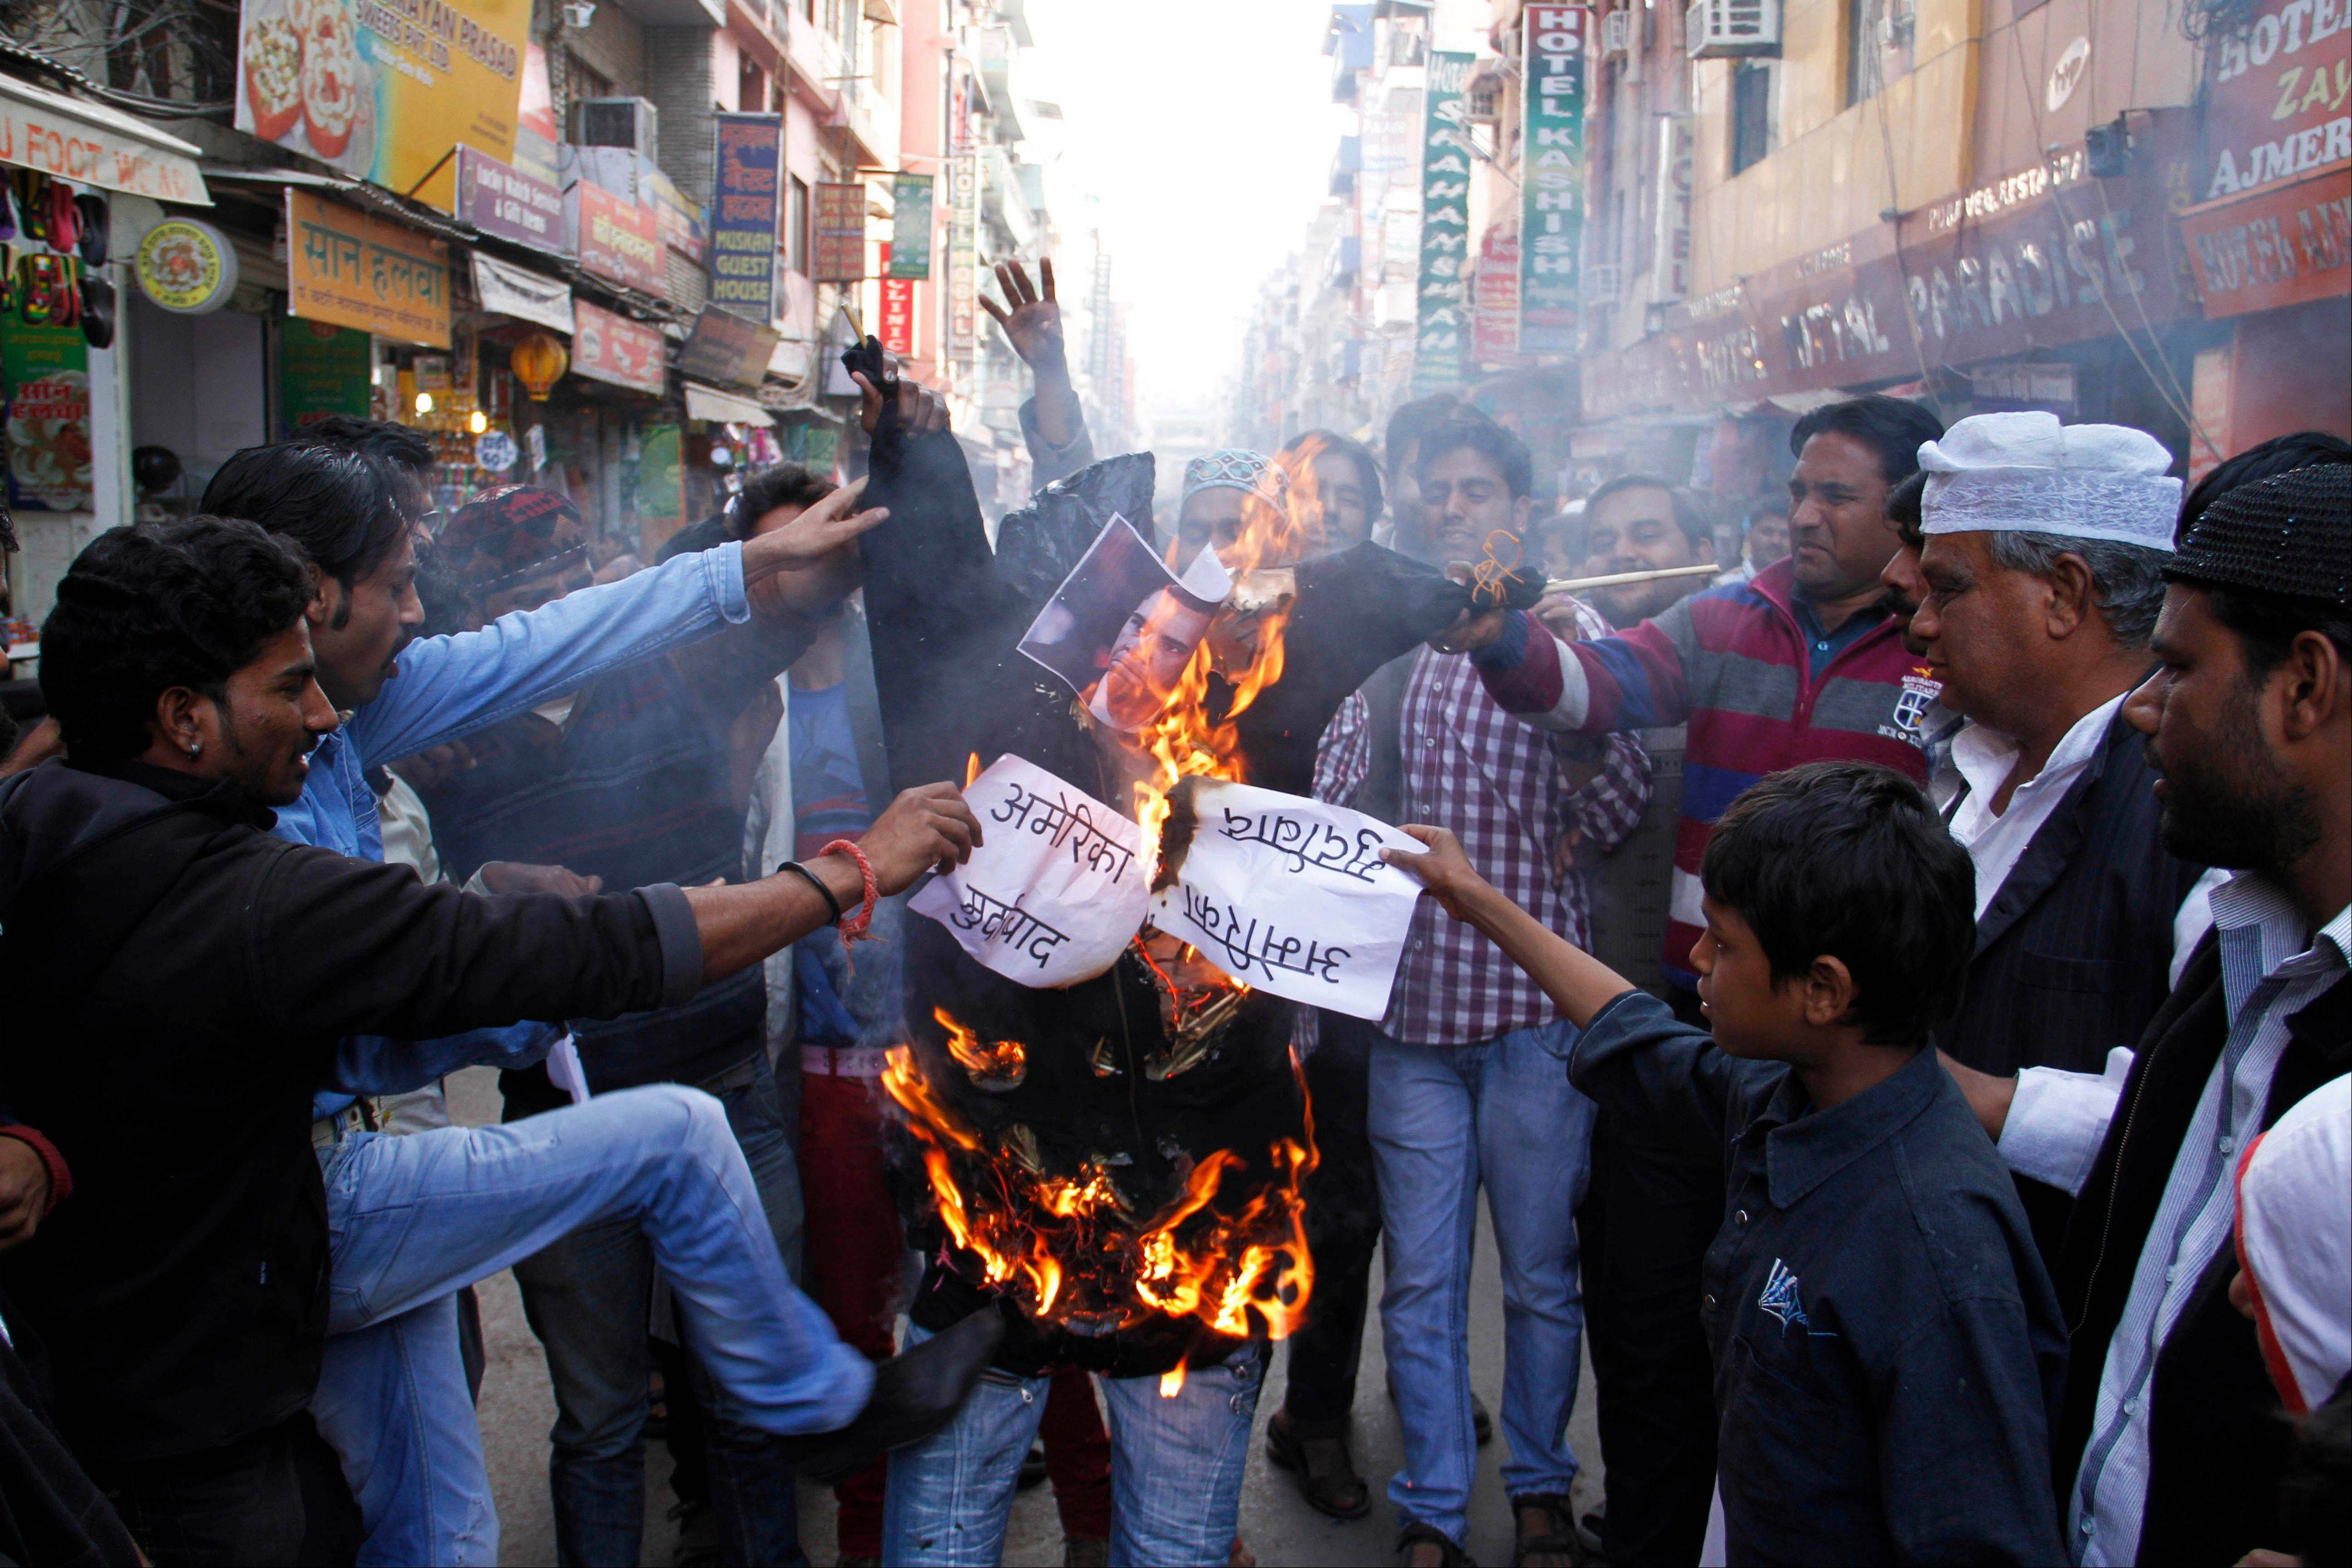 Indian Muslims burn an effigy of U.S. President Barack Obama Thursday as they protest against the alleged mistreatment of New York based Indian diplomat Devyani Khobragade. The case has sparked a diplomatic furor between the United States and India, which is incensed over what its officials described as degrading treatment toward India's deputy consul general in New York.